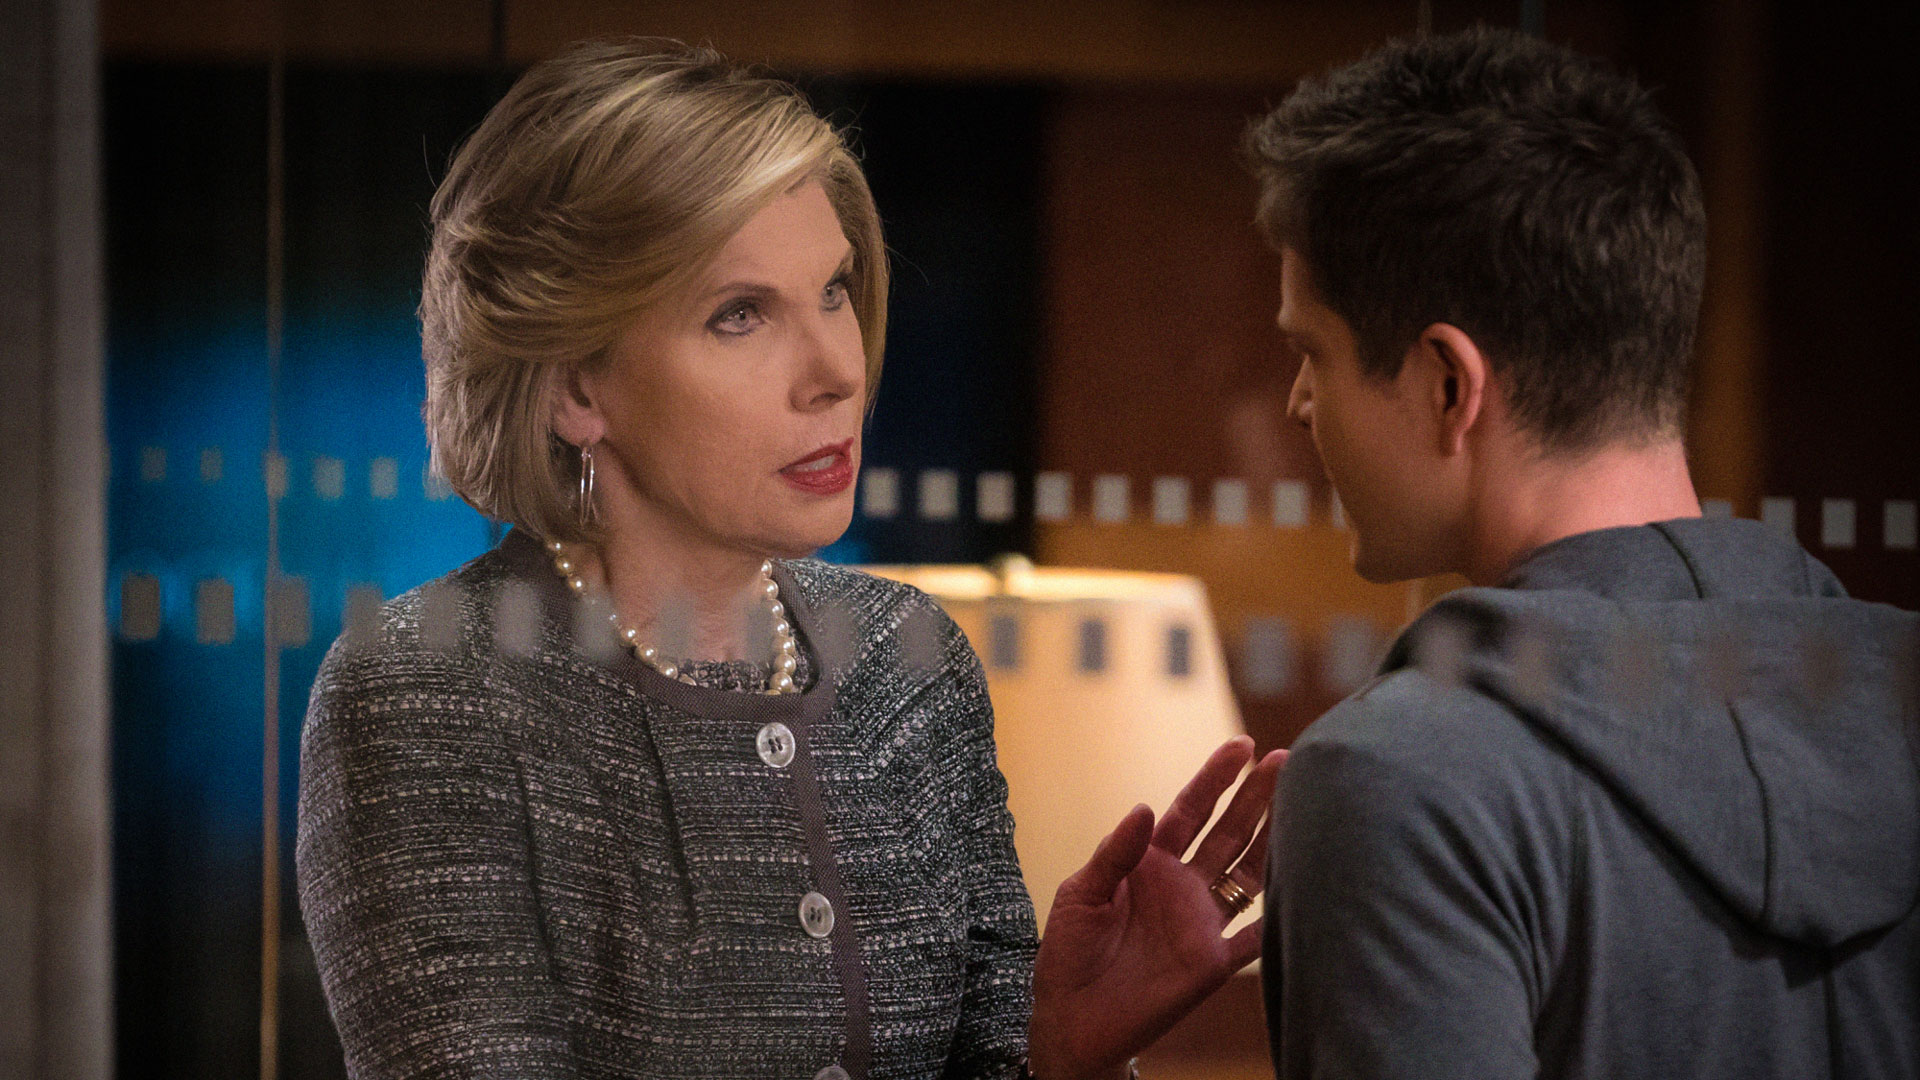 Christine Baranski as Diane Lockhart and Matt Czuchry as Cary Agos